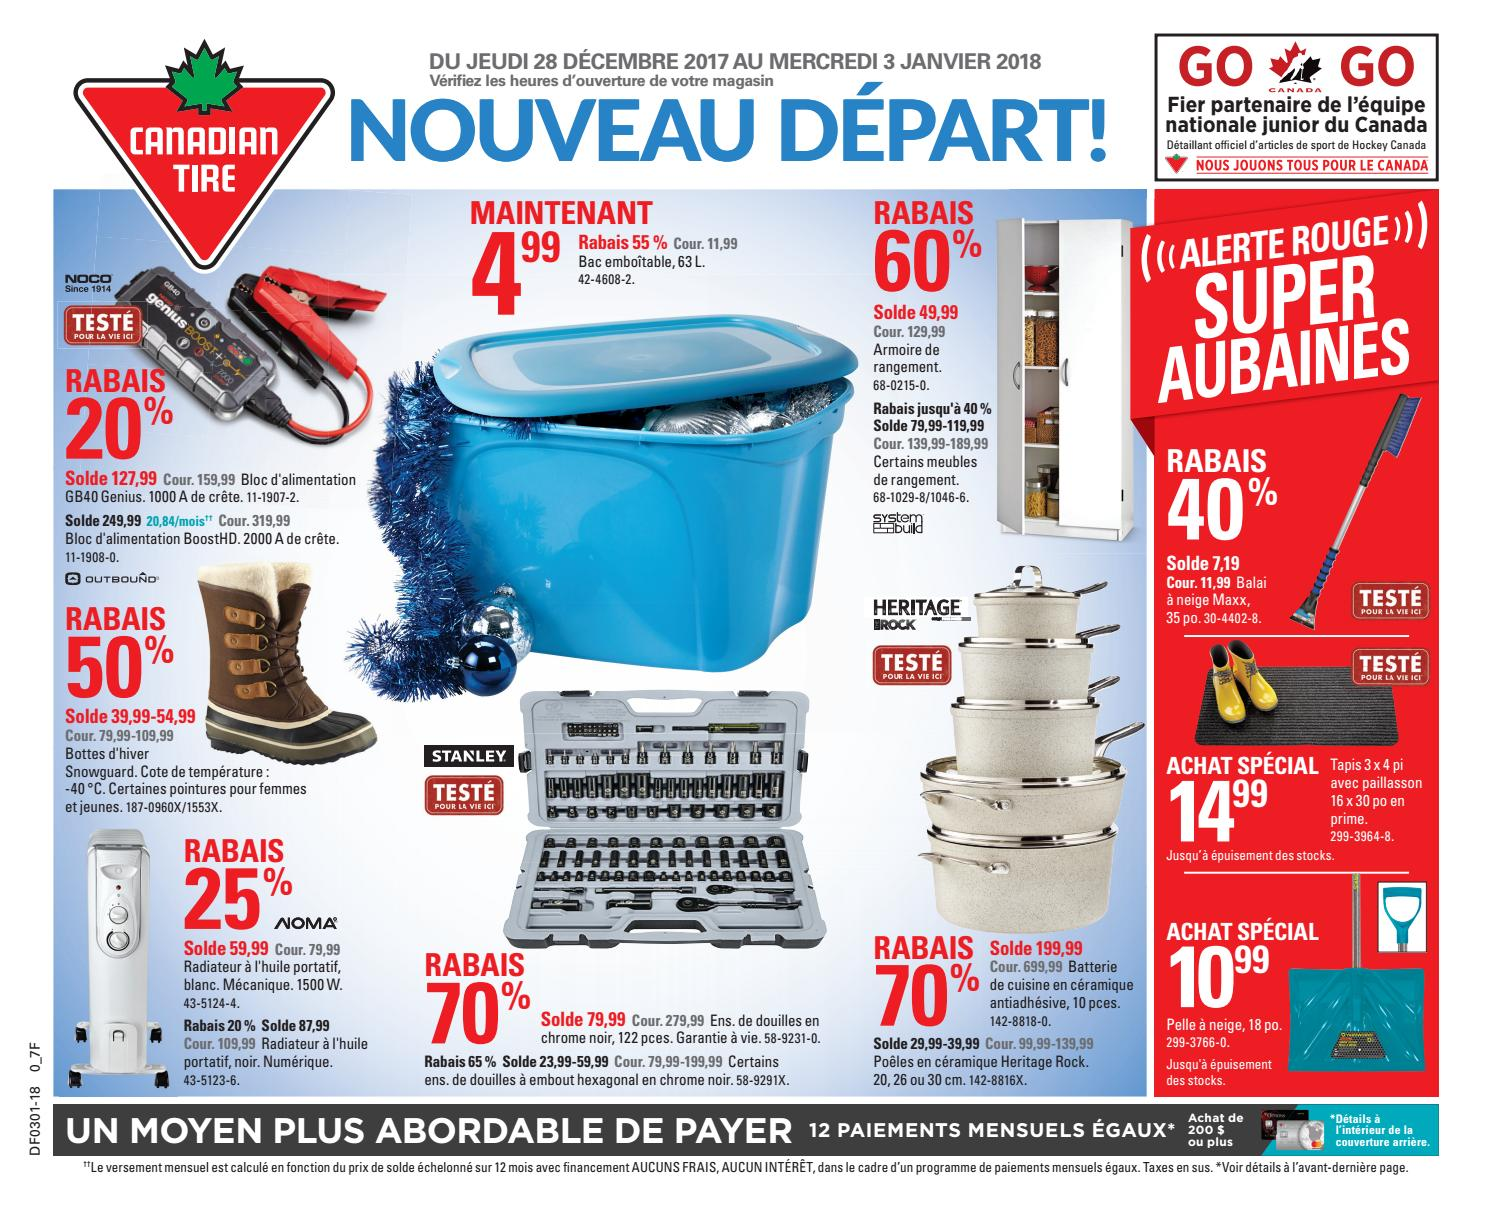 Pouf Exterieur Canadian Tire Publisac 2017 Flyer Ctc Wk53 Fr 7f By Salewhale Issuu